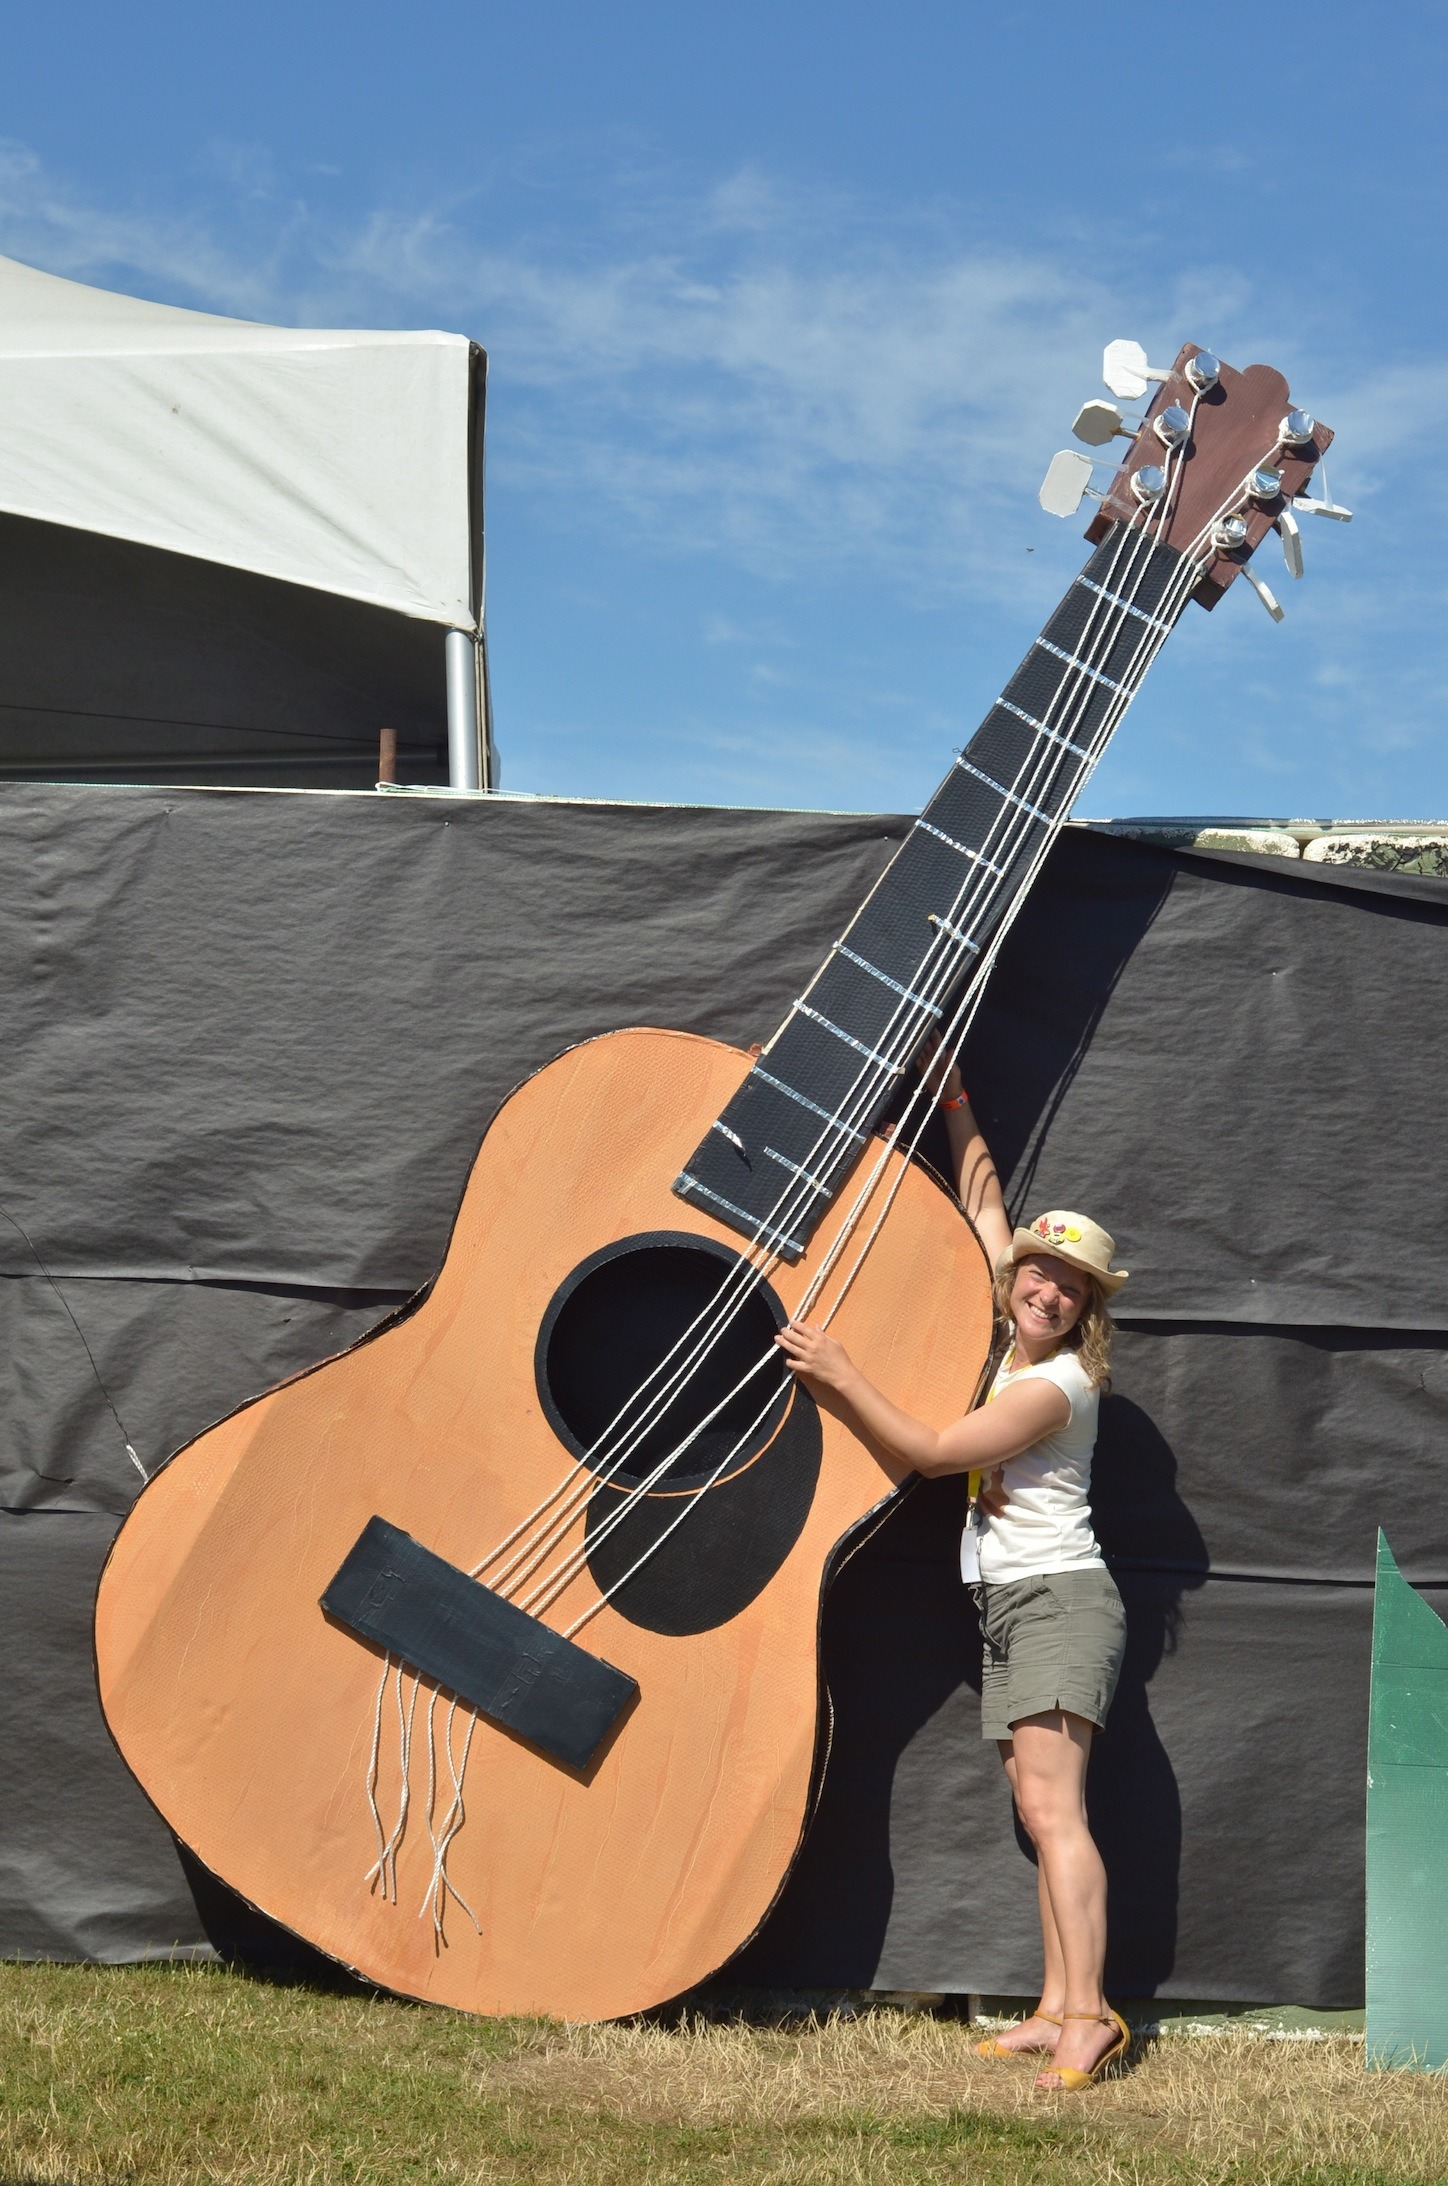 I think that guitar might be a bit big for you, Cloé!